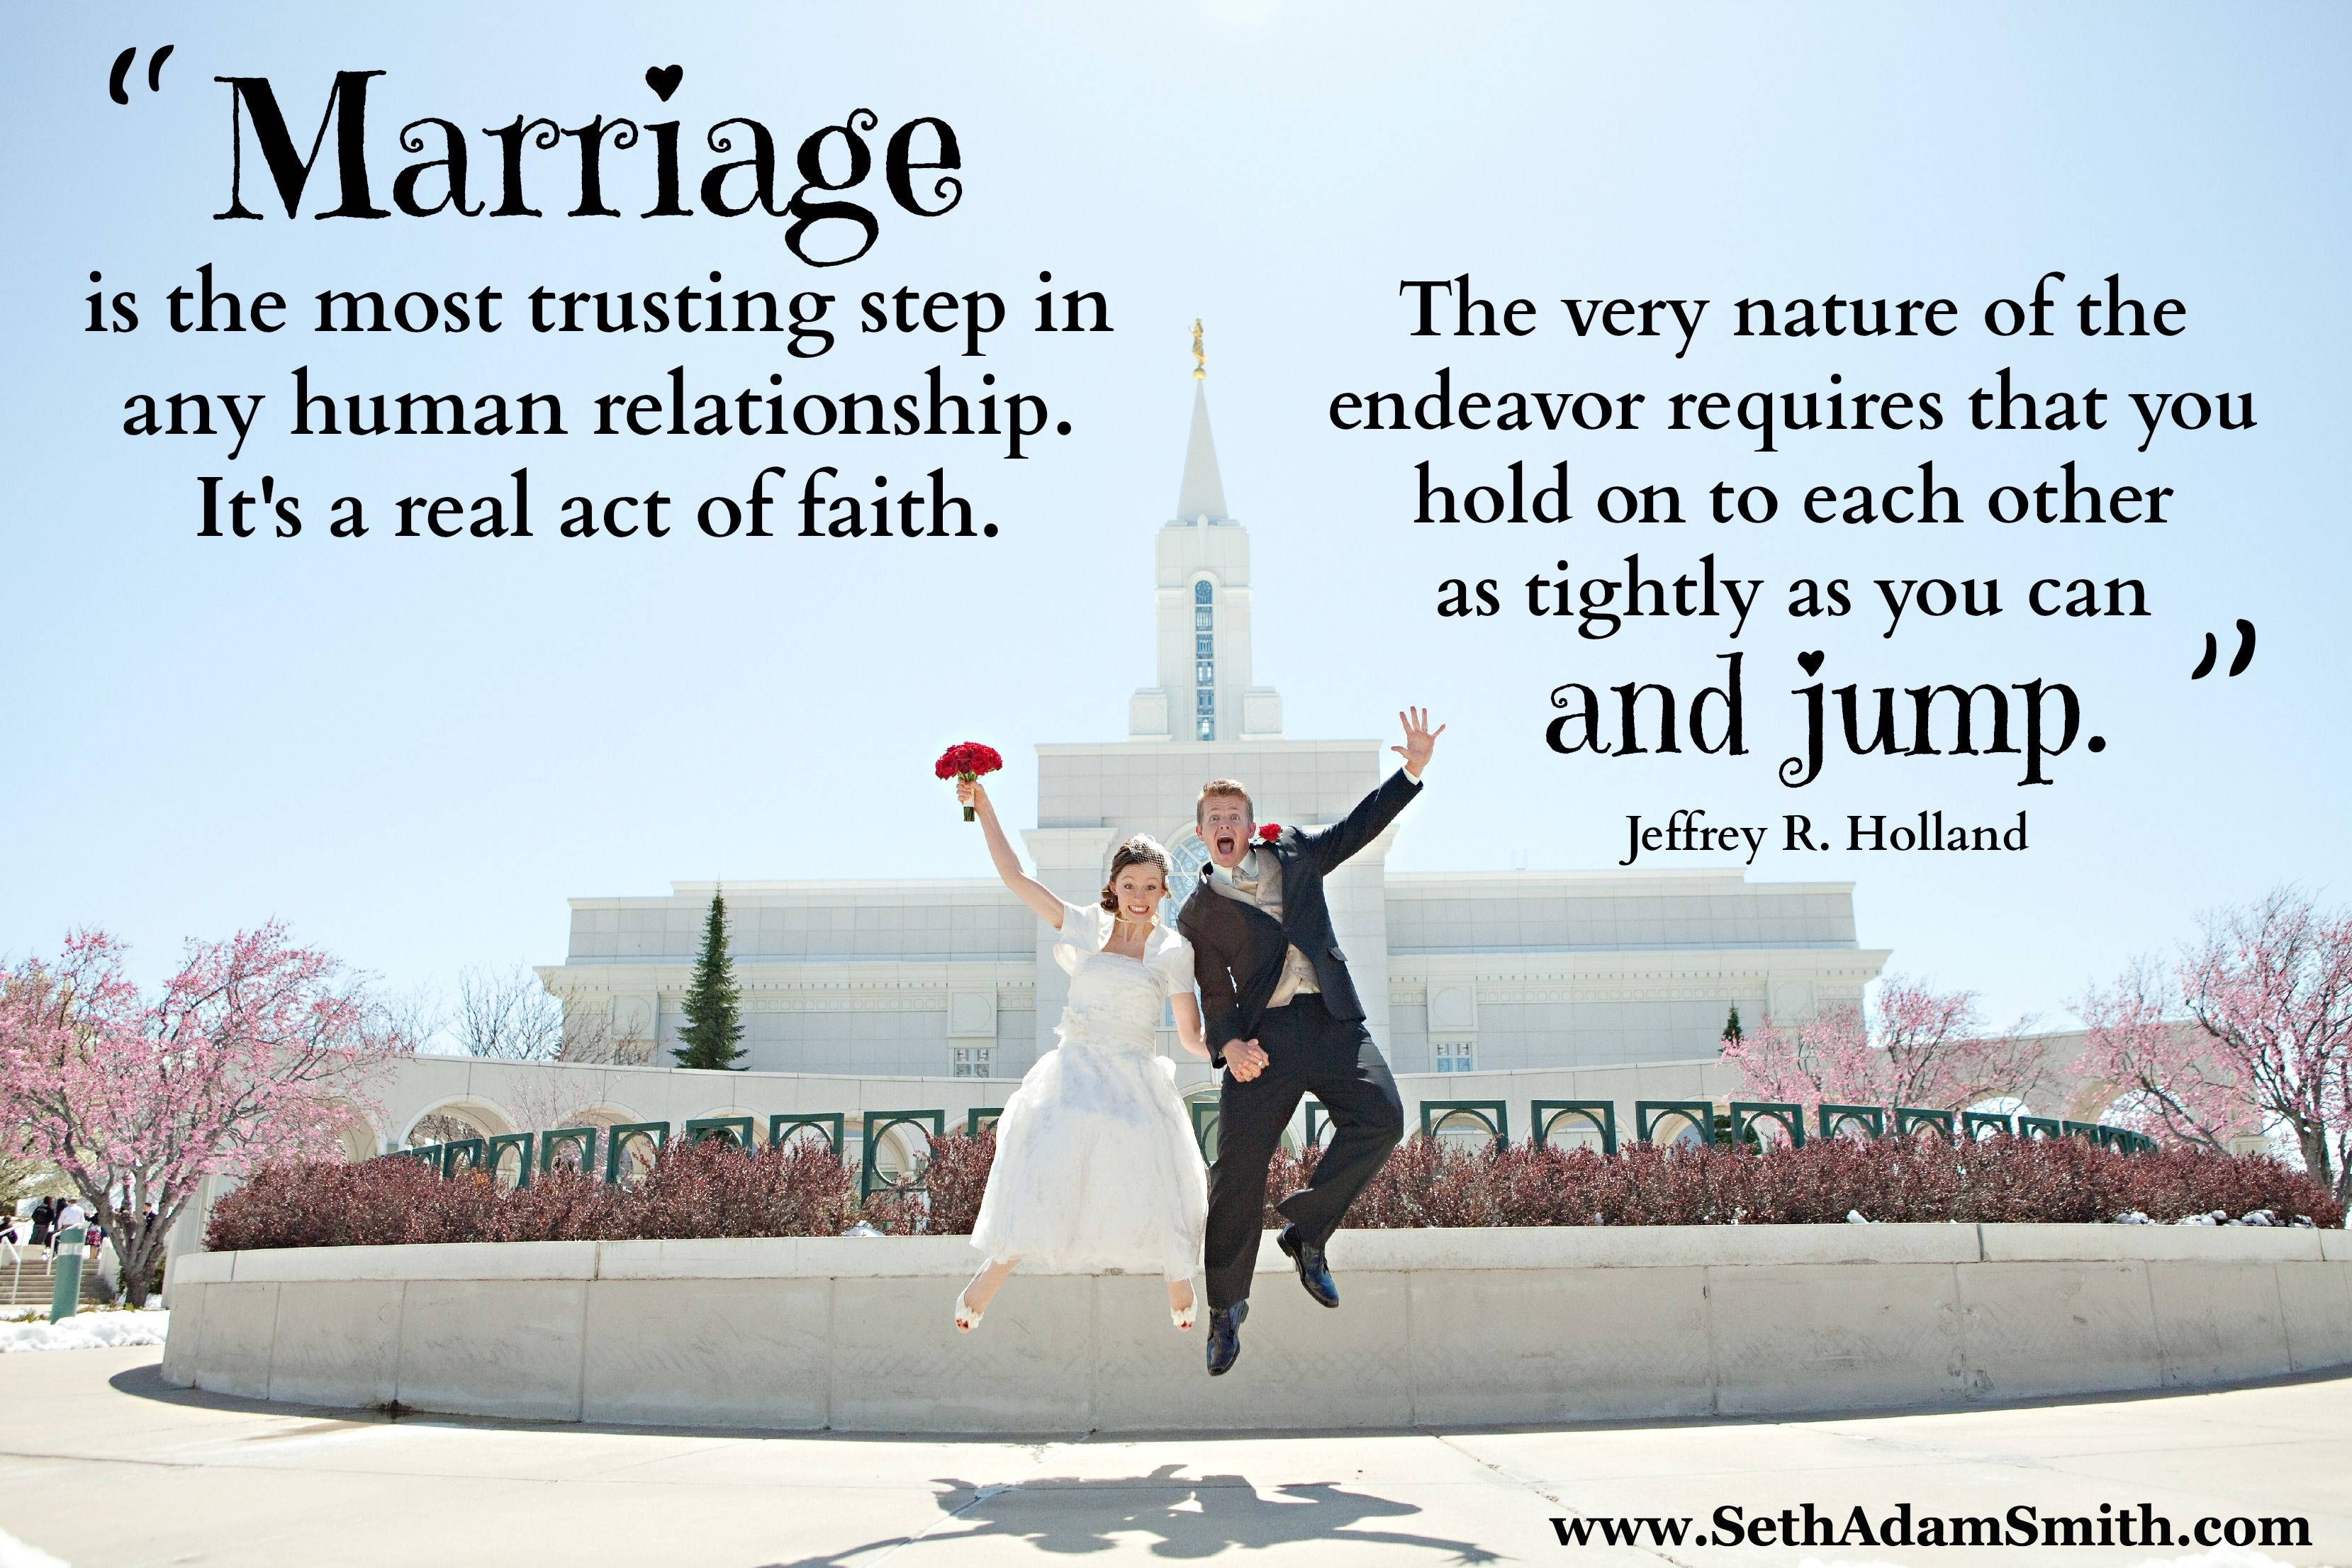 Best quote on marriage ever. Love the Bountiful temple in